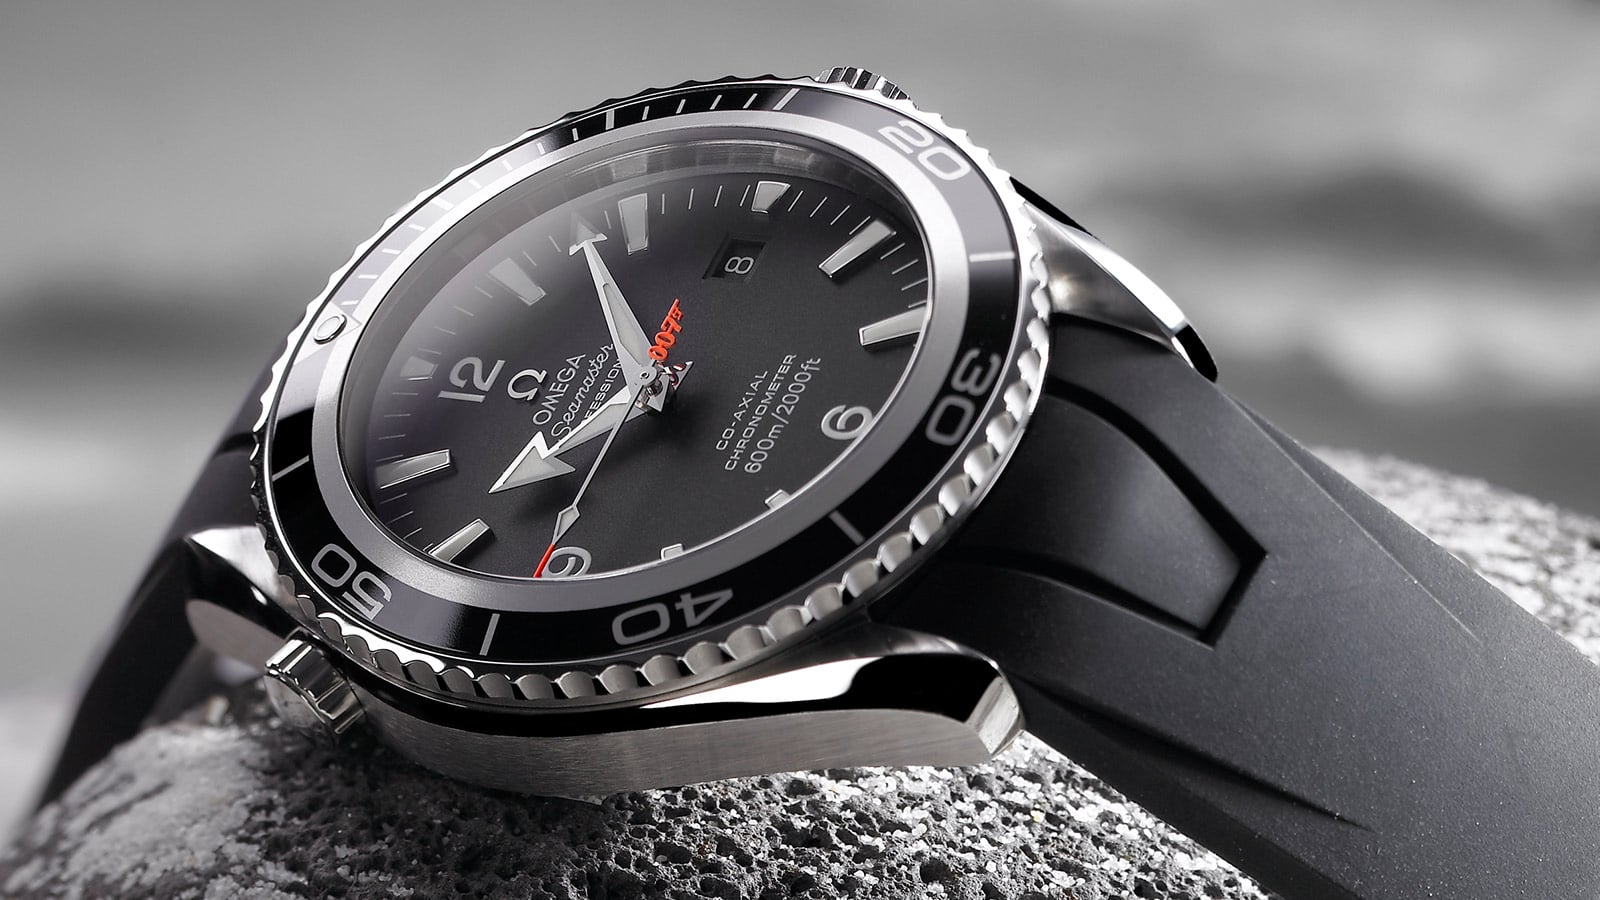 OMEGA and James Bond : a beautiful friendship | OMEGA® 歐米茄與占士邦:友誼永固 | OMEGA® - 投影片1: 3 - 9884